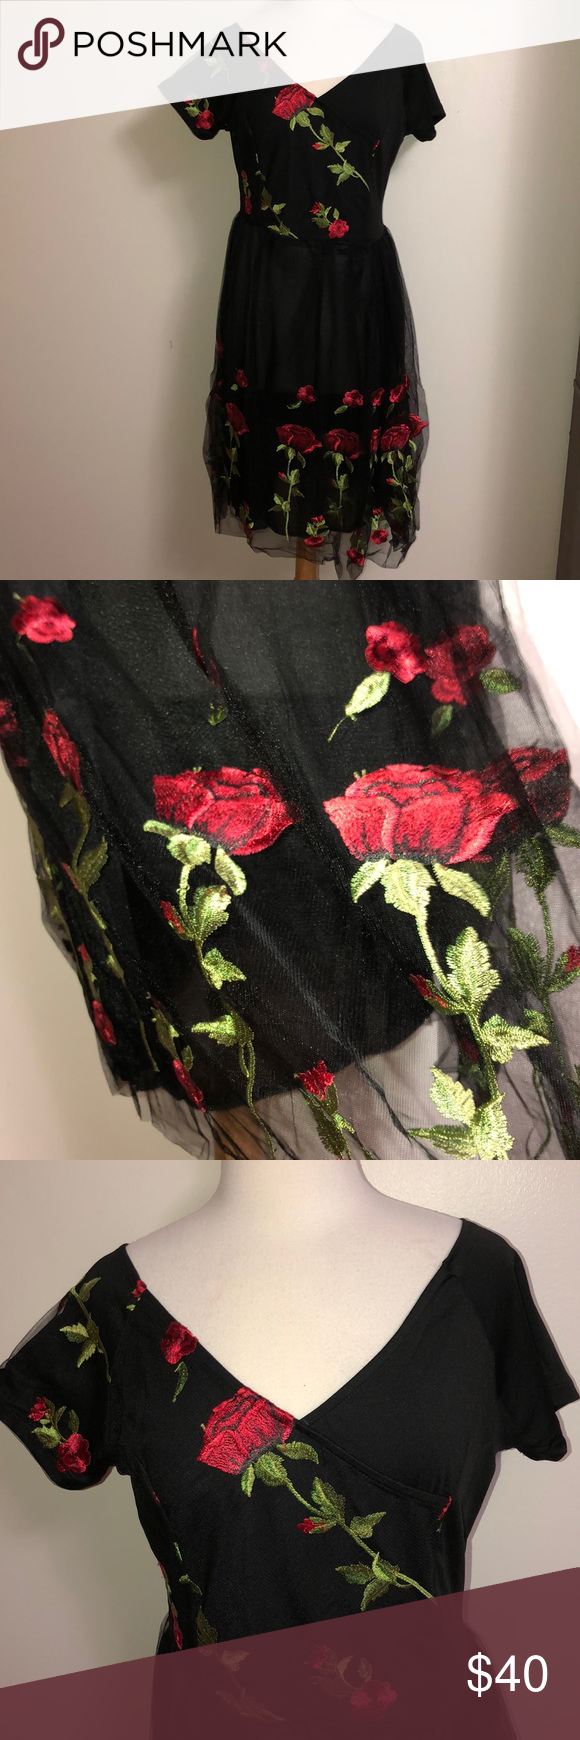 Black Midi Dress With Red Rose Embroidery Black Midi Dress Midi Dress Rose Embroidery [ 1740 x 580 Pixel ]